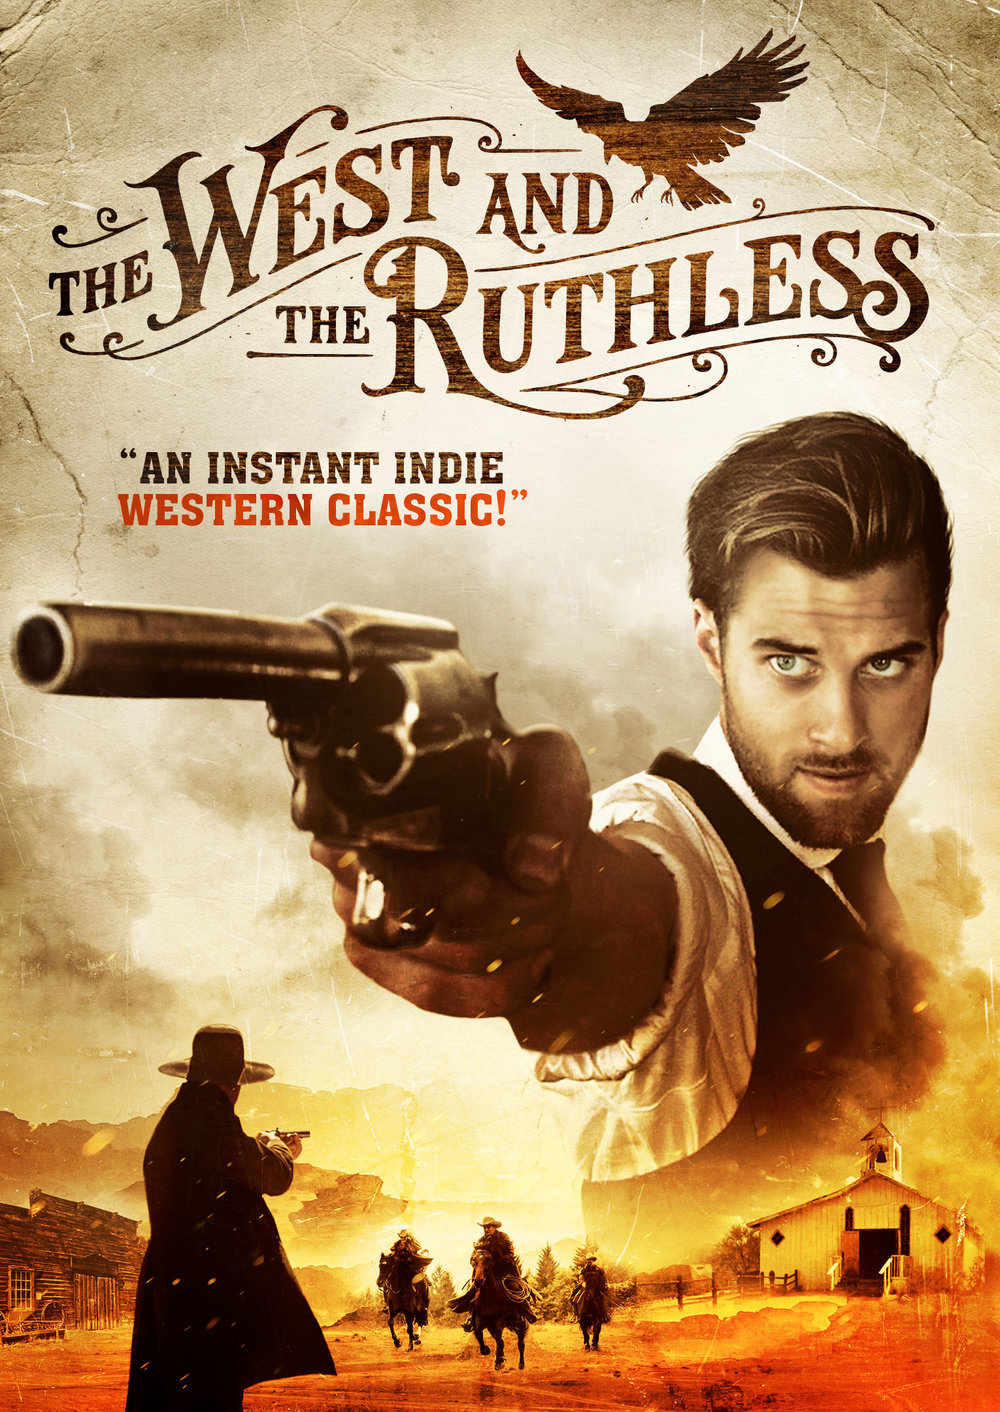 The West and the Ruthless, Feature Film